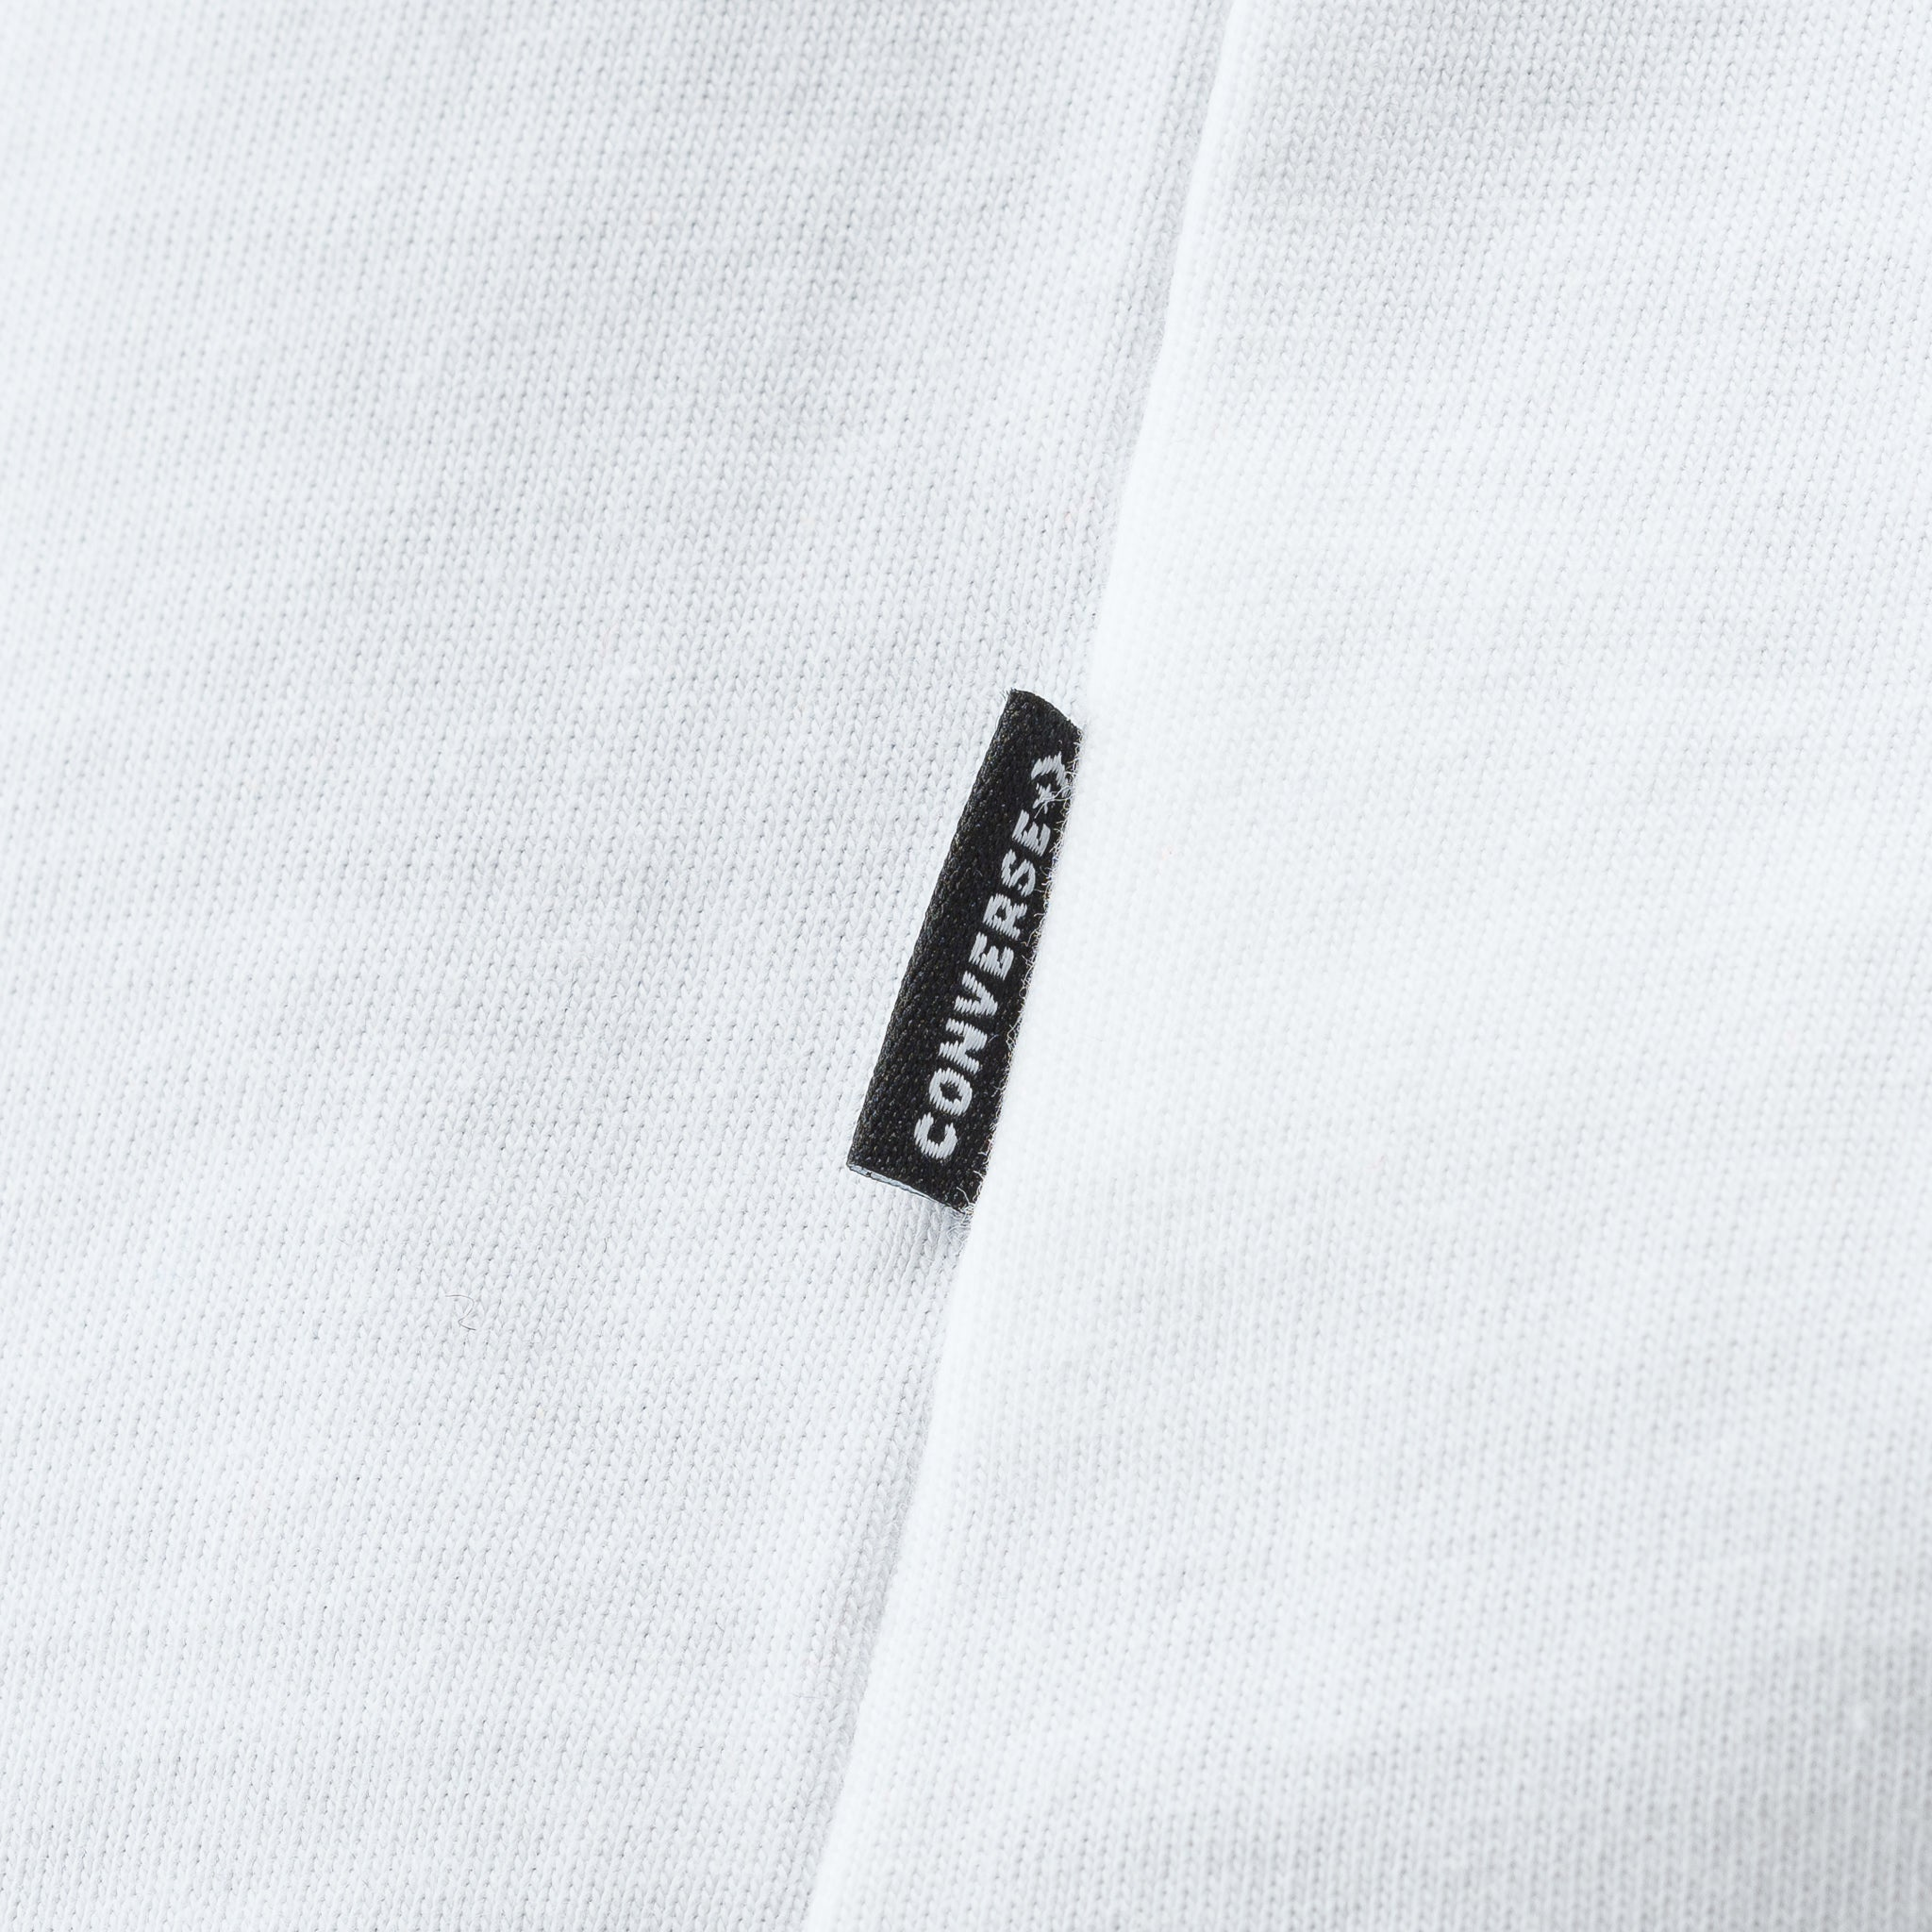 x Perks and Mini Short Sleeve Graphic T-Shirt in White